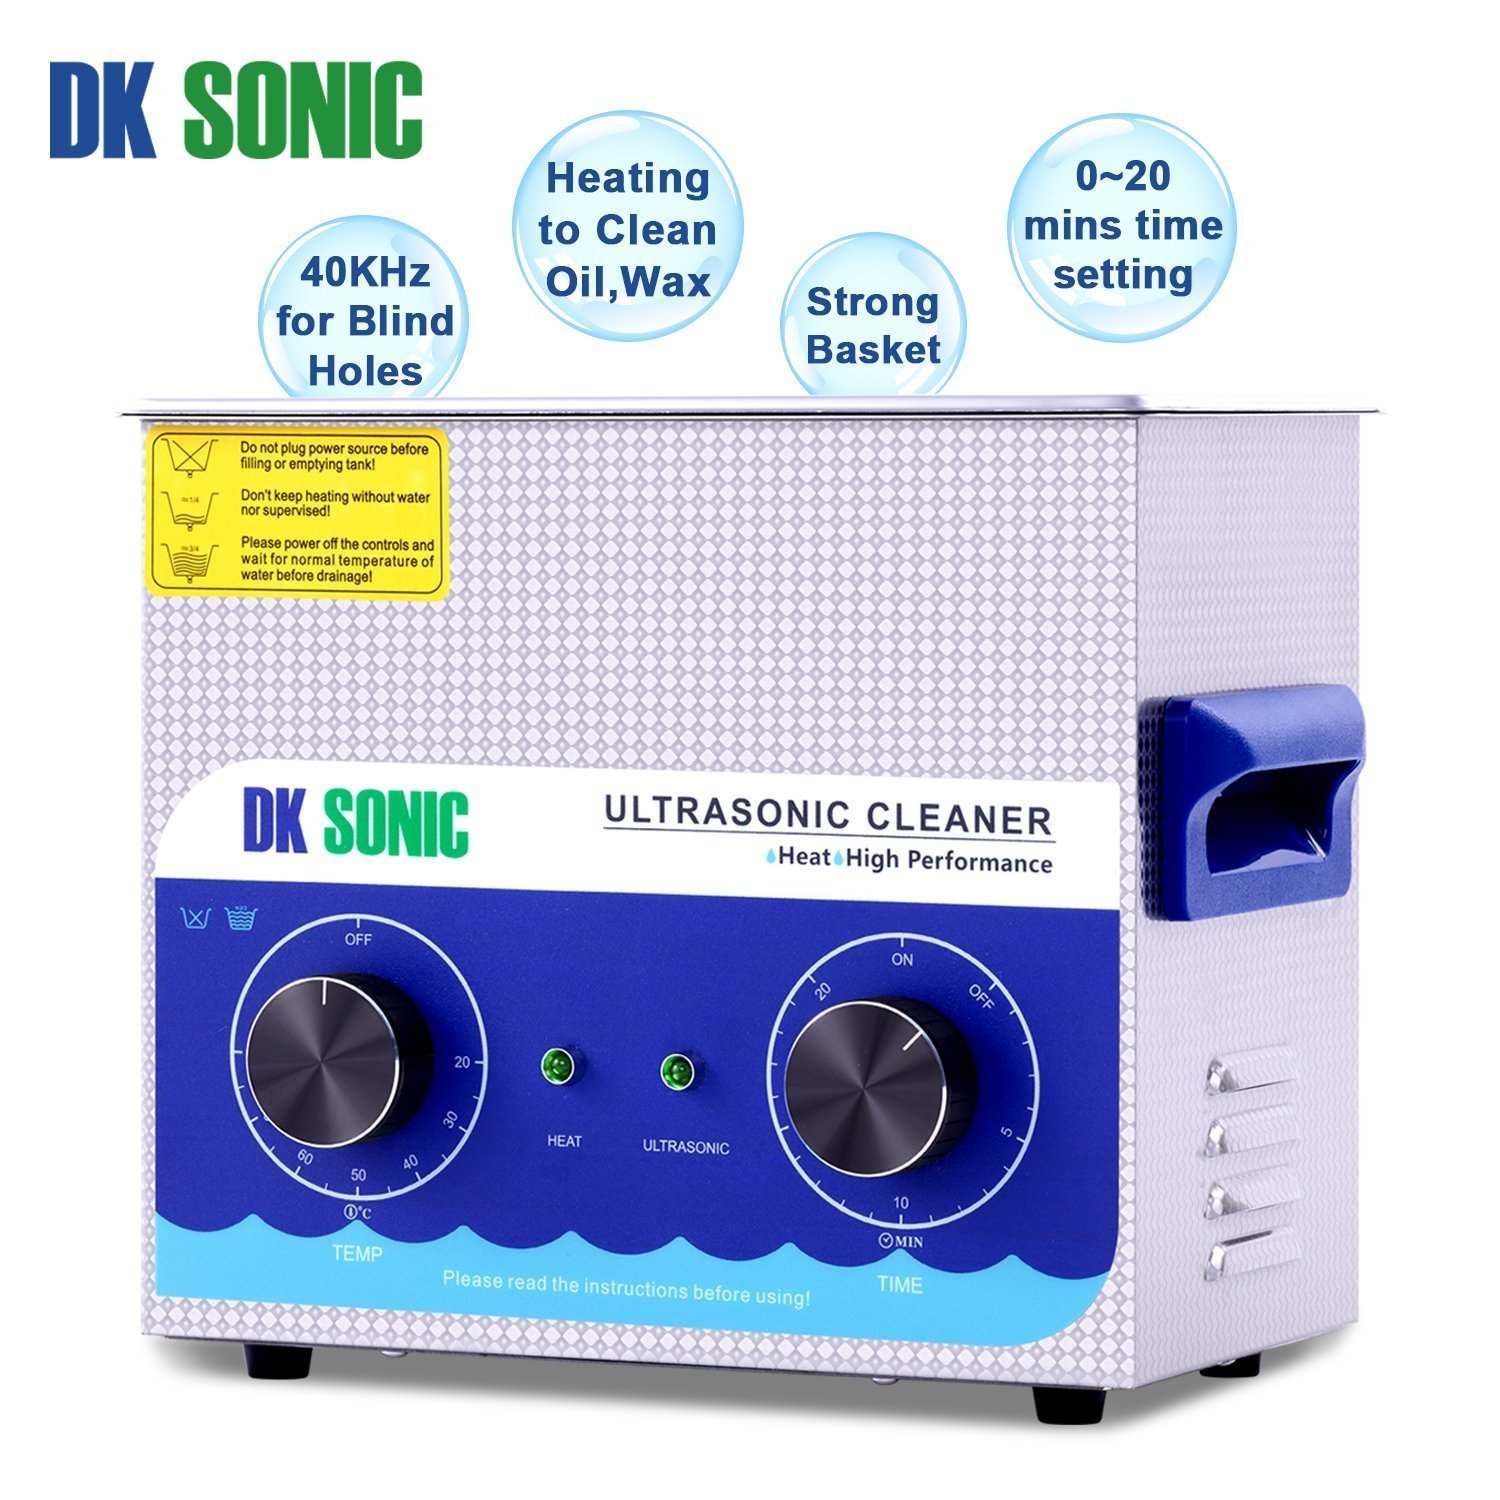 Commercial Ultrasonic Gun Cleaner Heated - DK SONIC 3L 120W Ultrasonic Jewelry Cleaner with Heater Basket for Parts Denture Carburetor Eyeglass Fuel Injector Record Circuit Board Dental 40KHz by DK SONIC (Image #3)